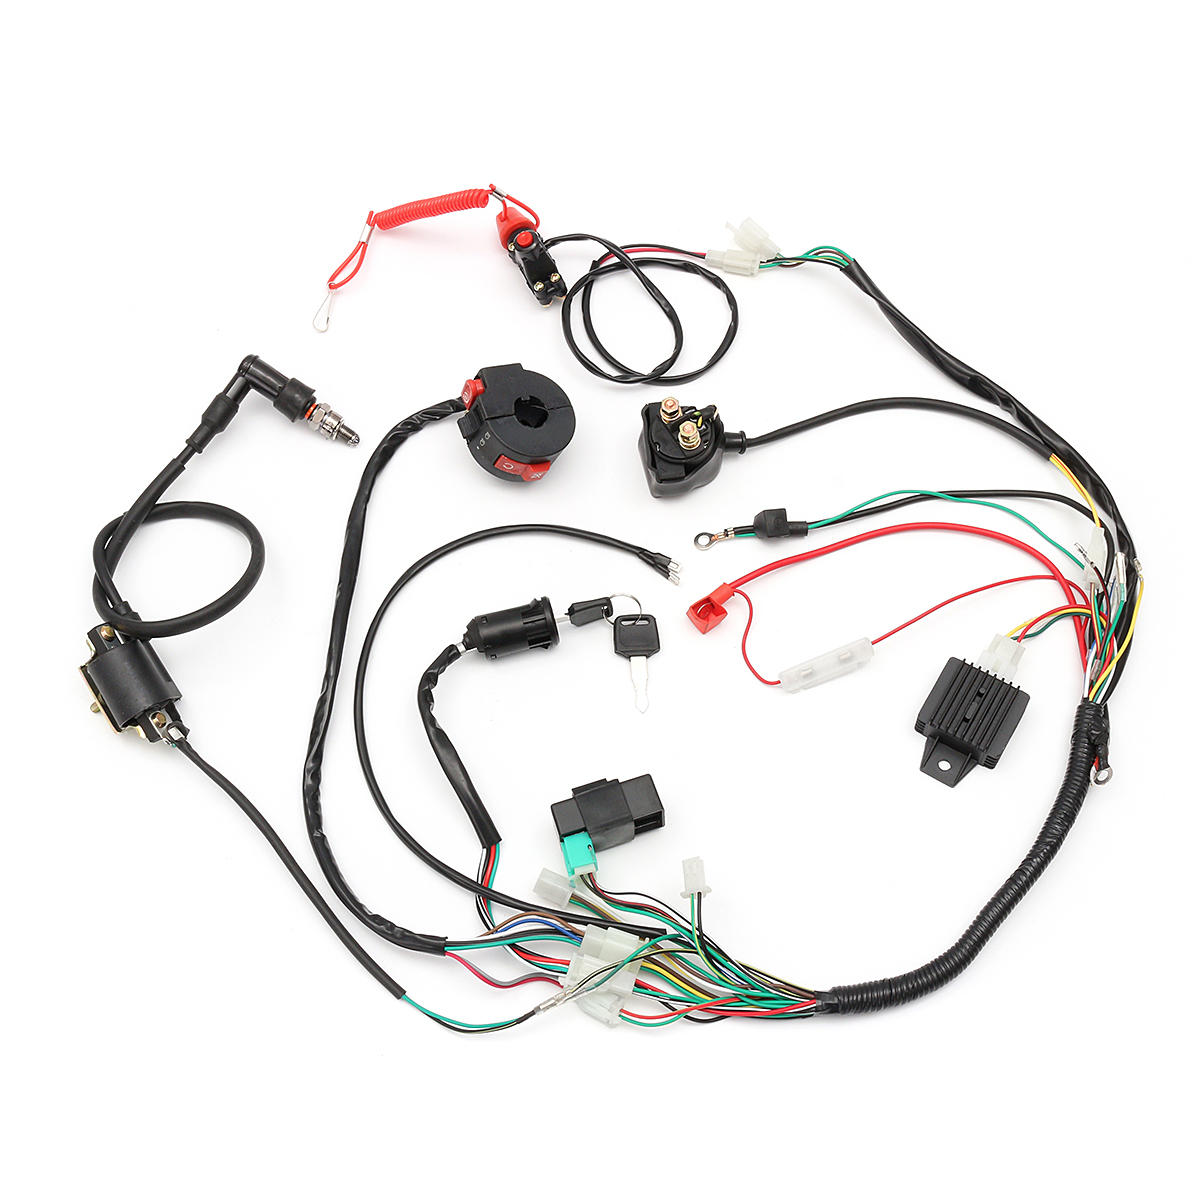 hight resolution of wiring harness loom solenoid coil rectifier cdi 50cc 70cc 110cc 70cc wiring harness